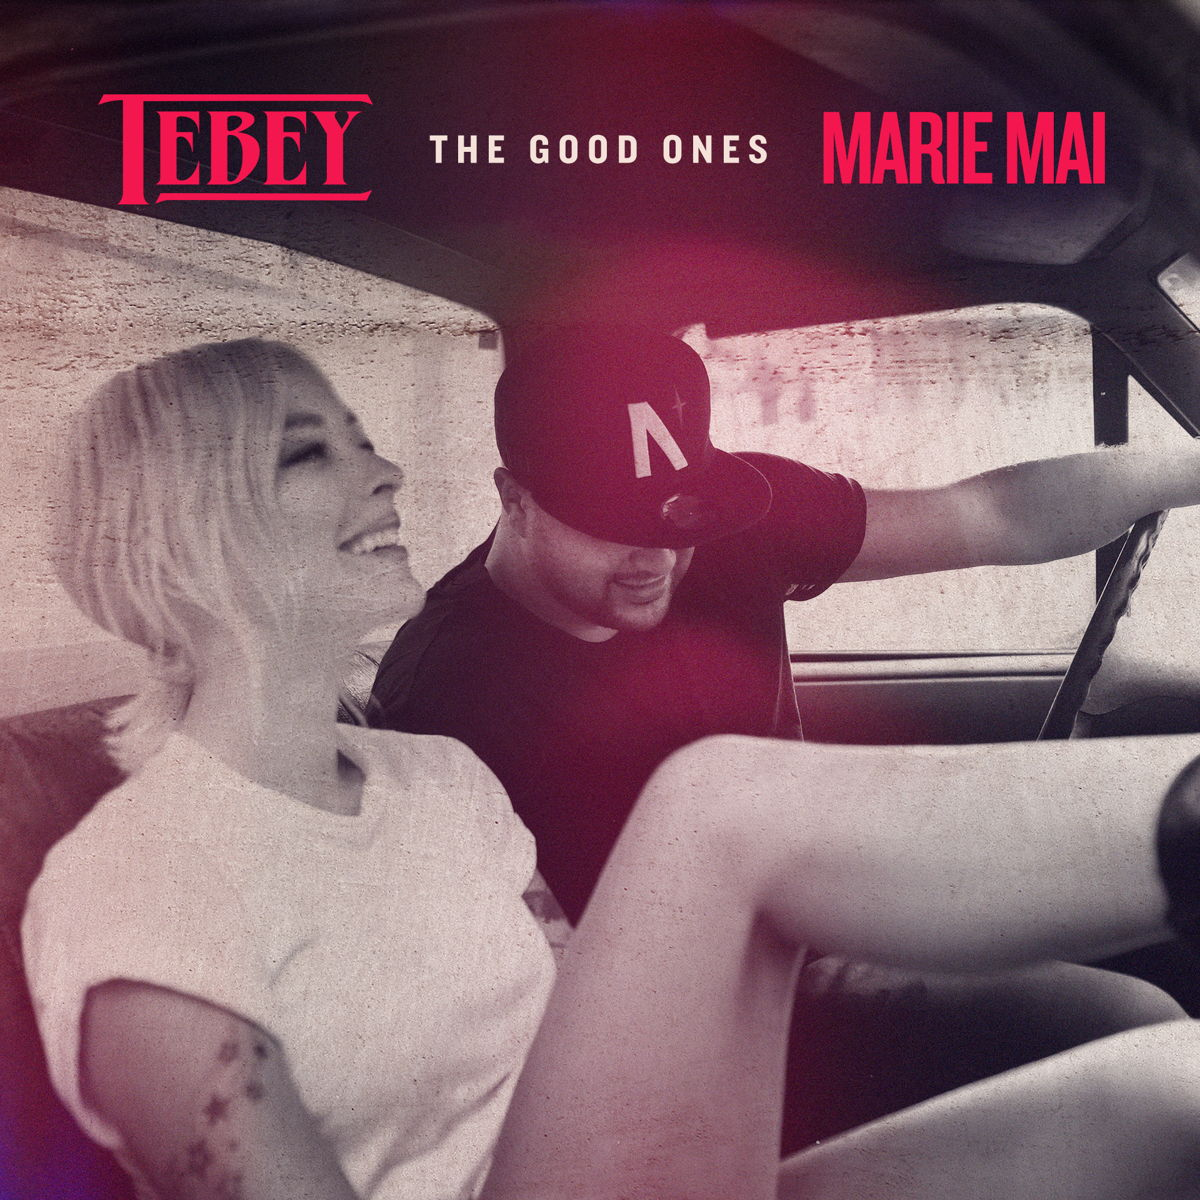 The Good Ones - Tebey and Marie Mai -  Available Now  (At Radio October 9, 2019)